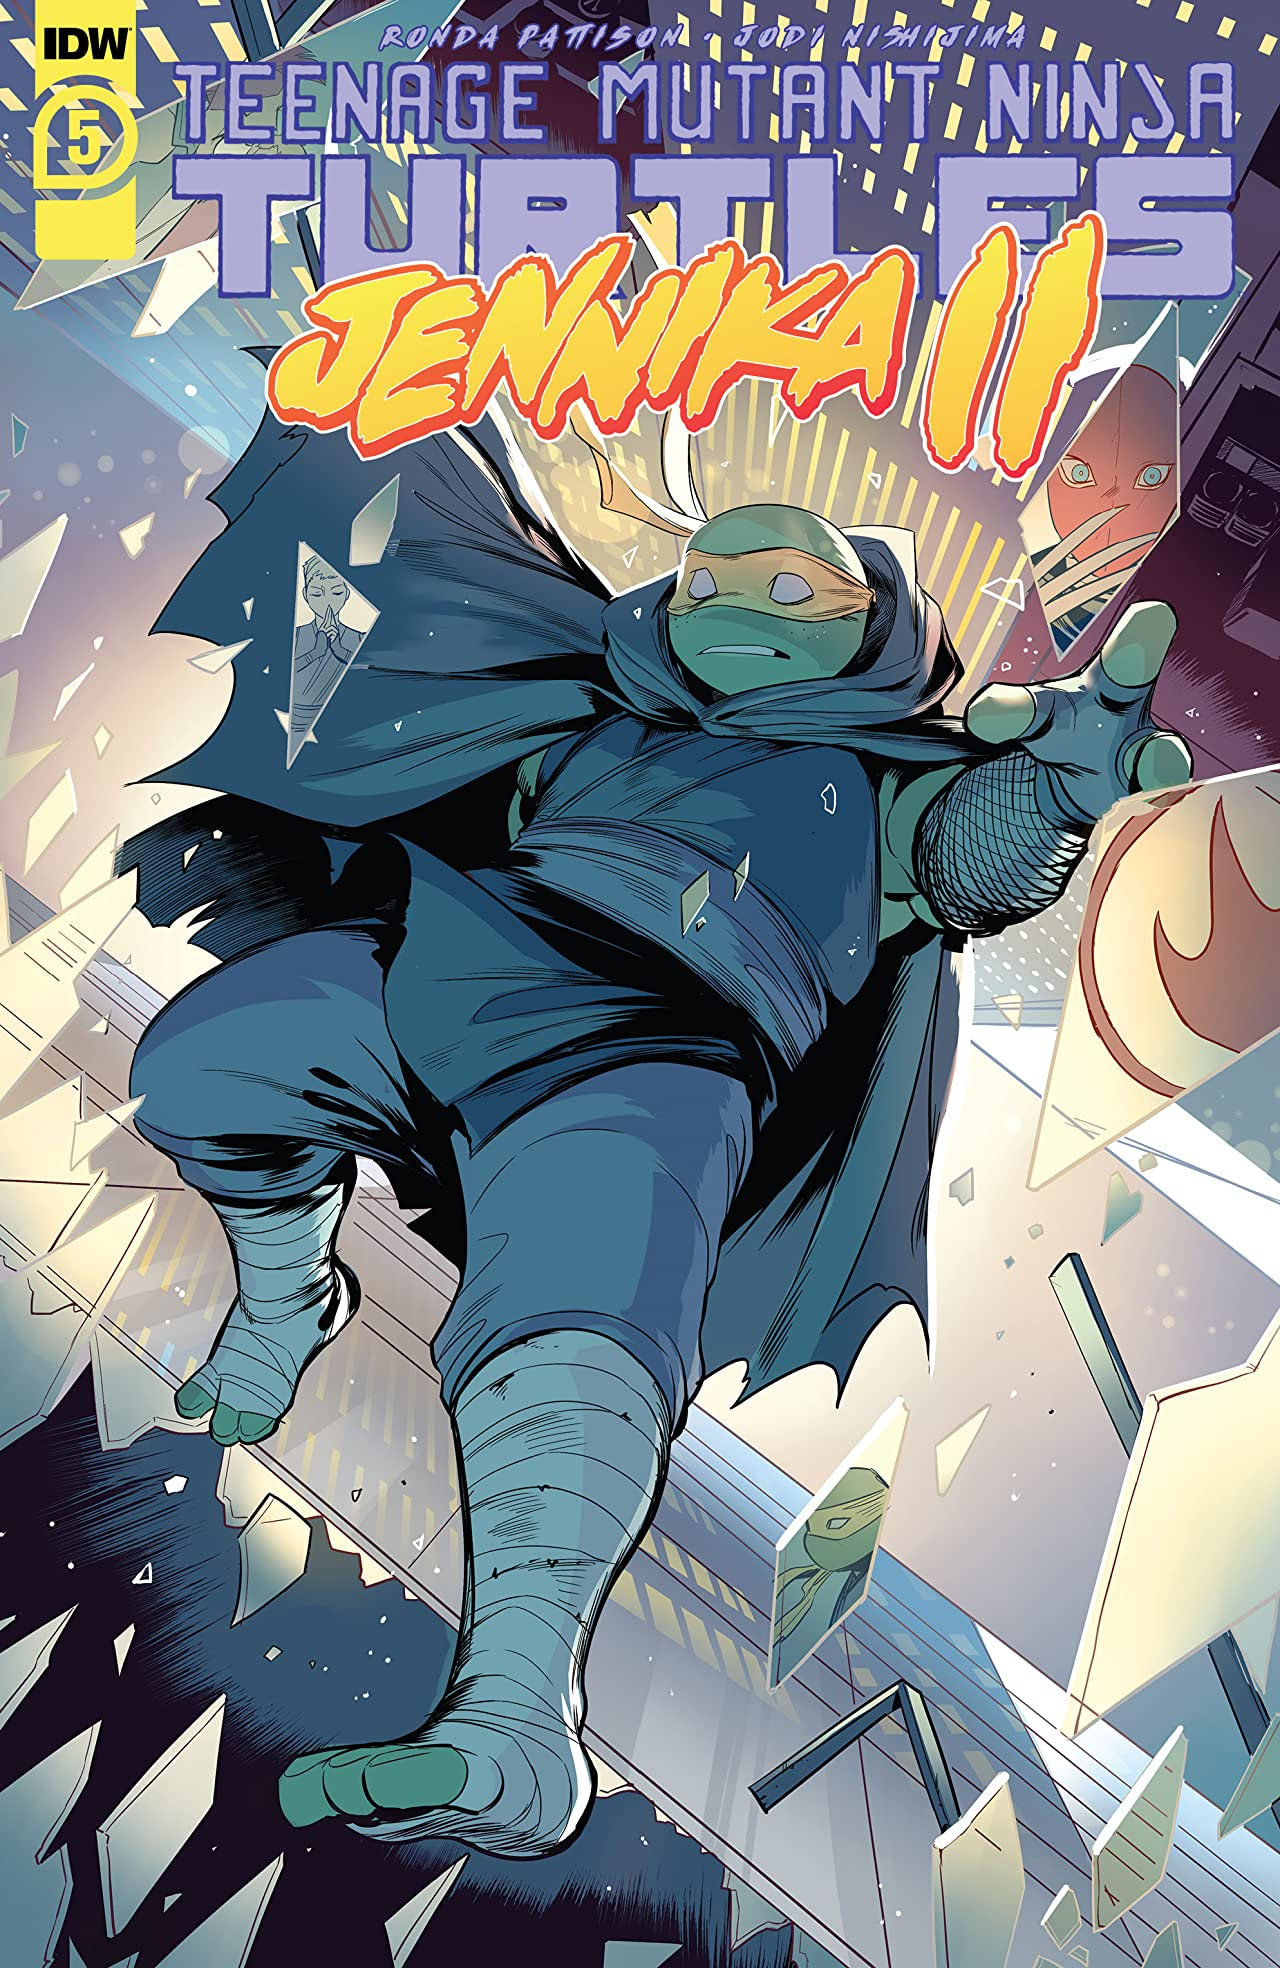 Teenage Mutant Ninja Turtles: Jennika II #5 (of 6)